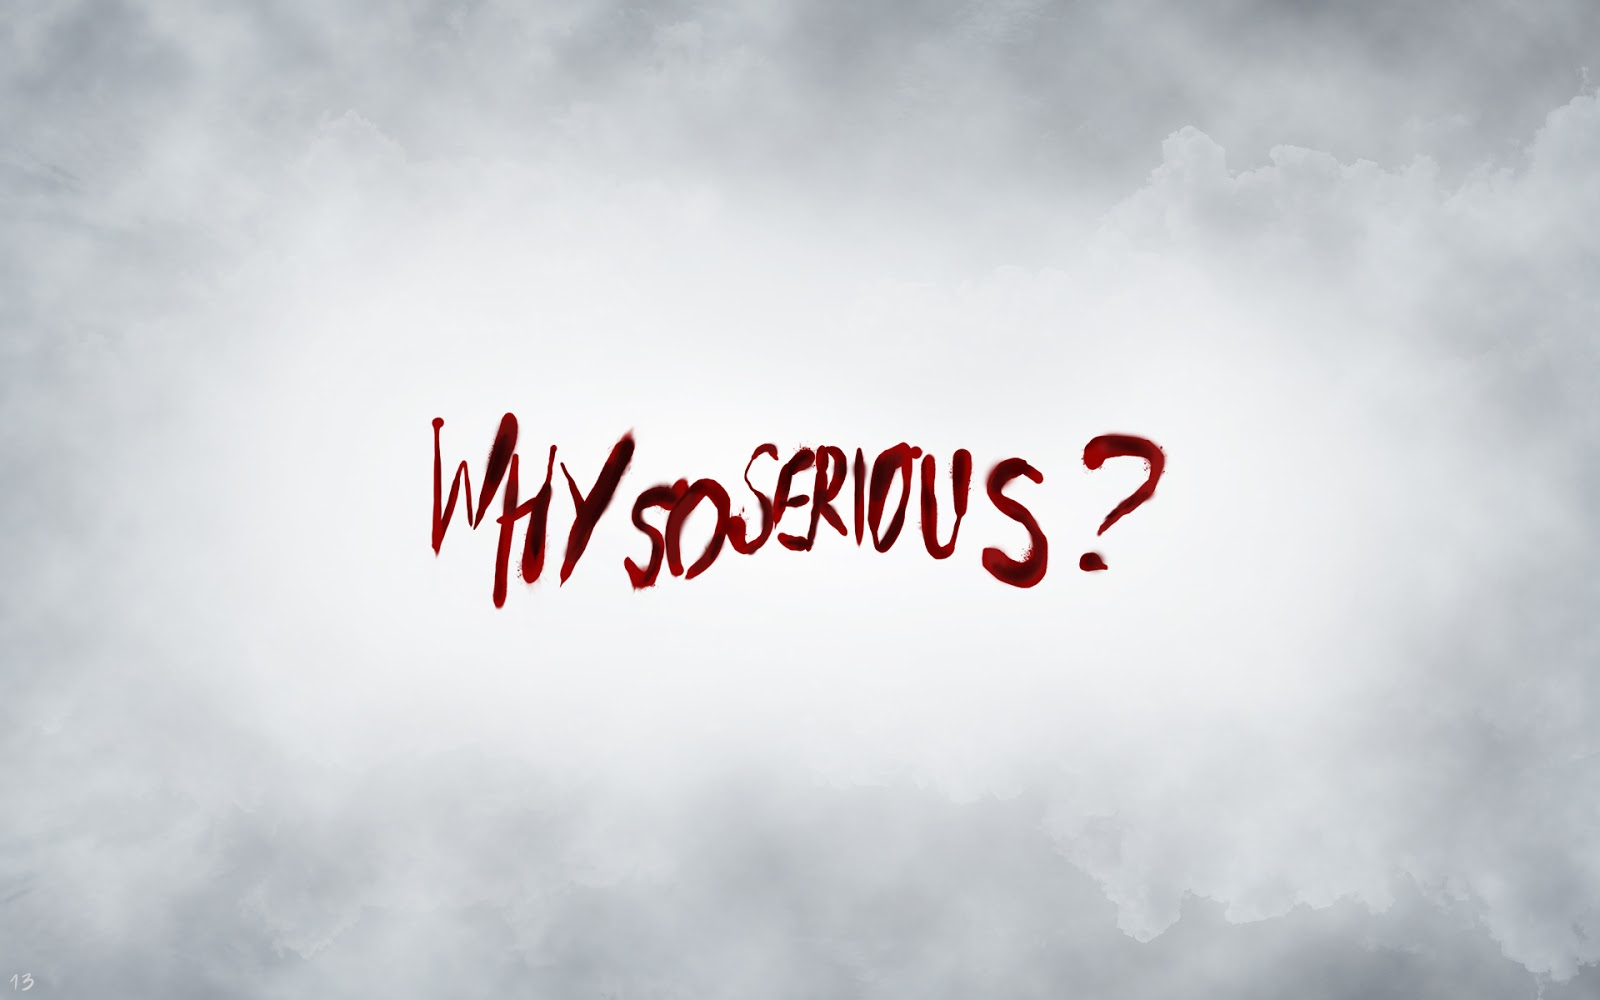 5 reasons to stop being so serious